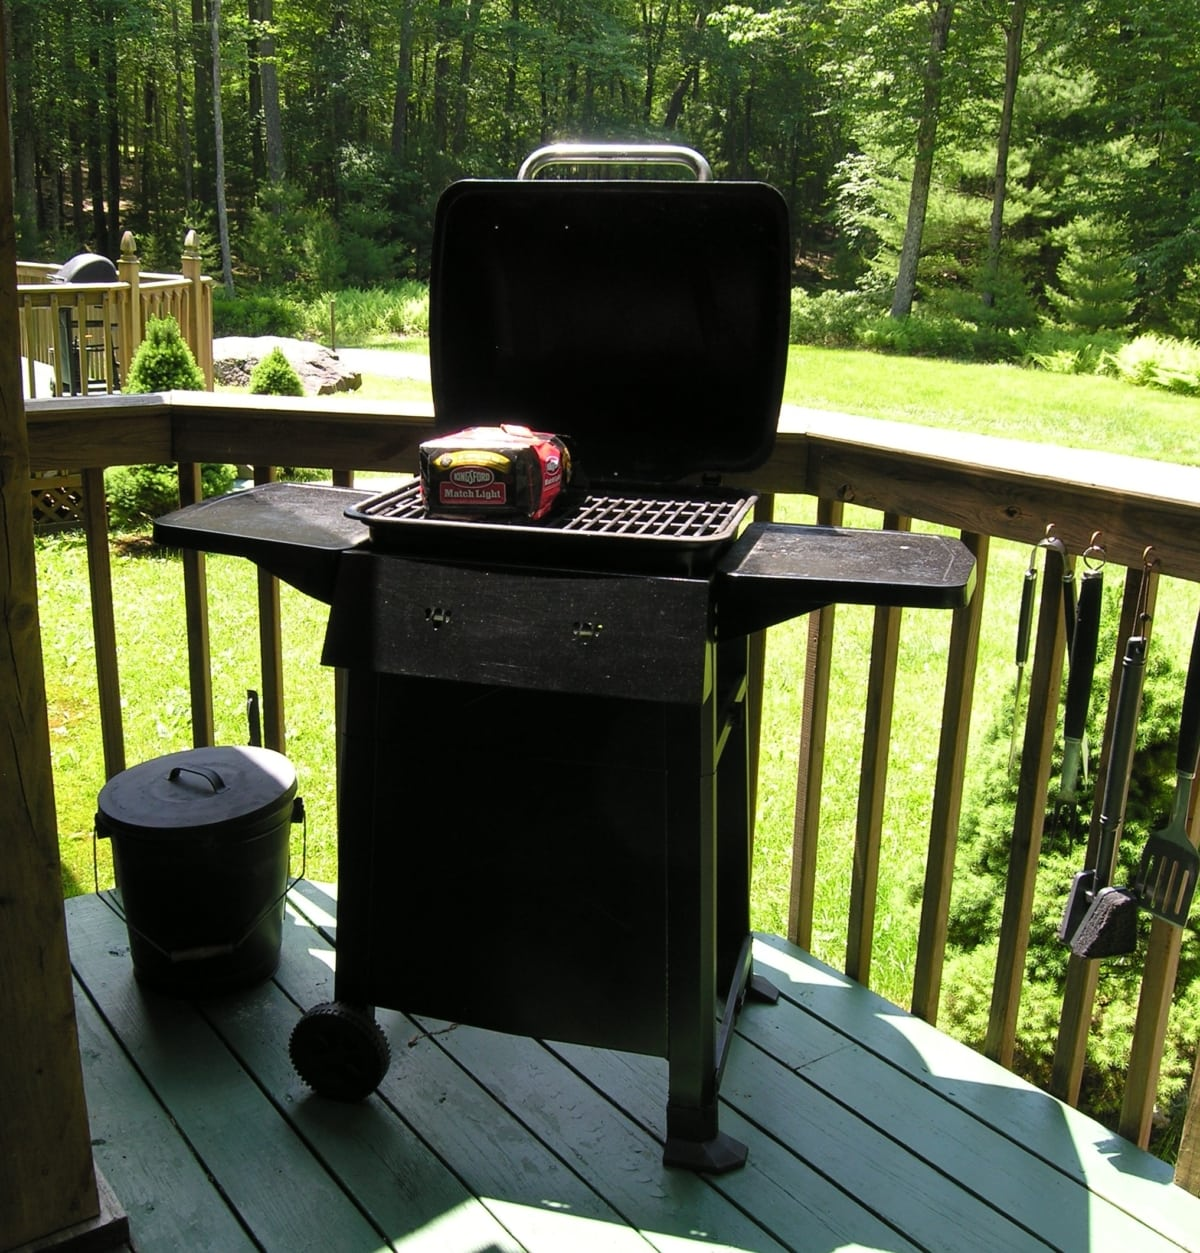 A grill on a deck